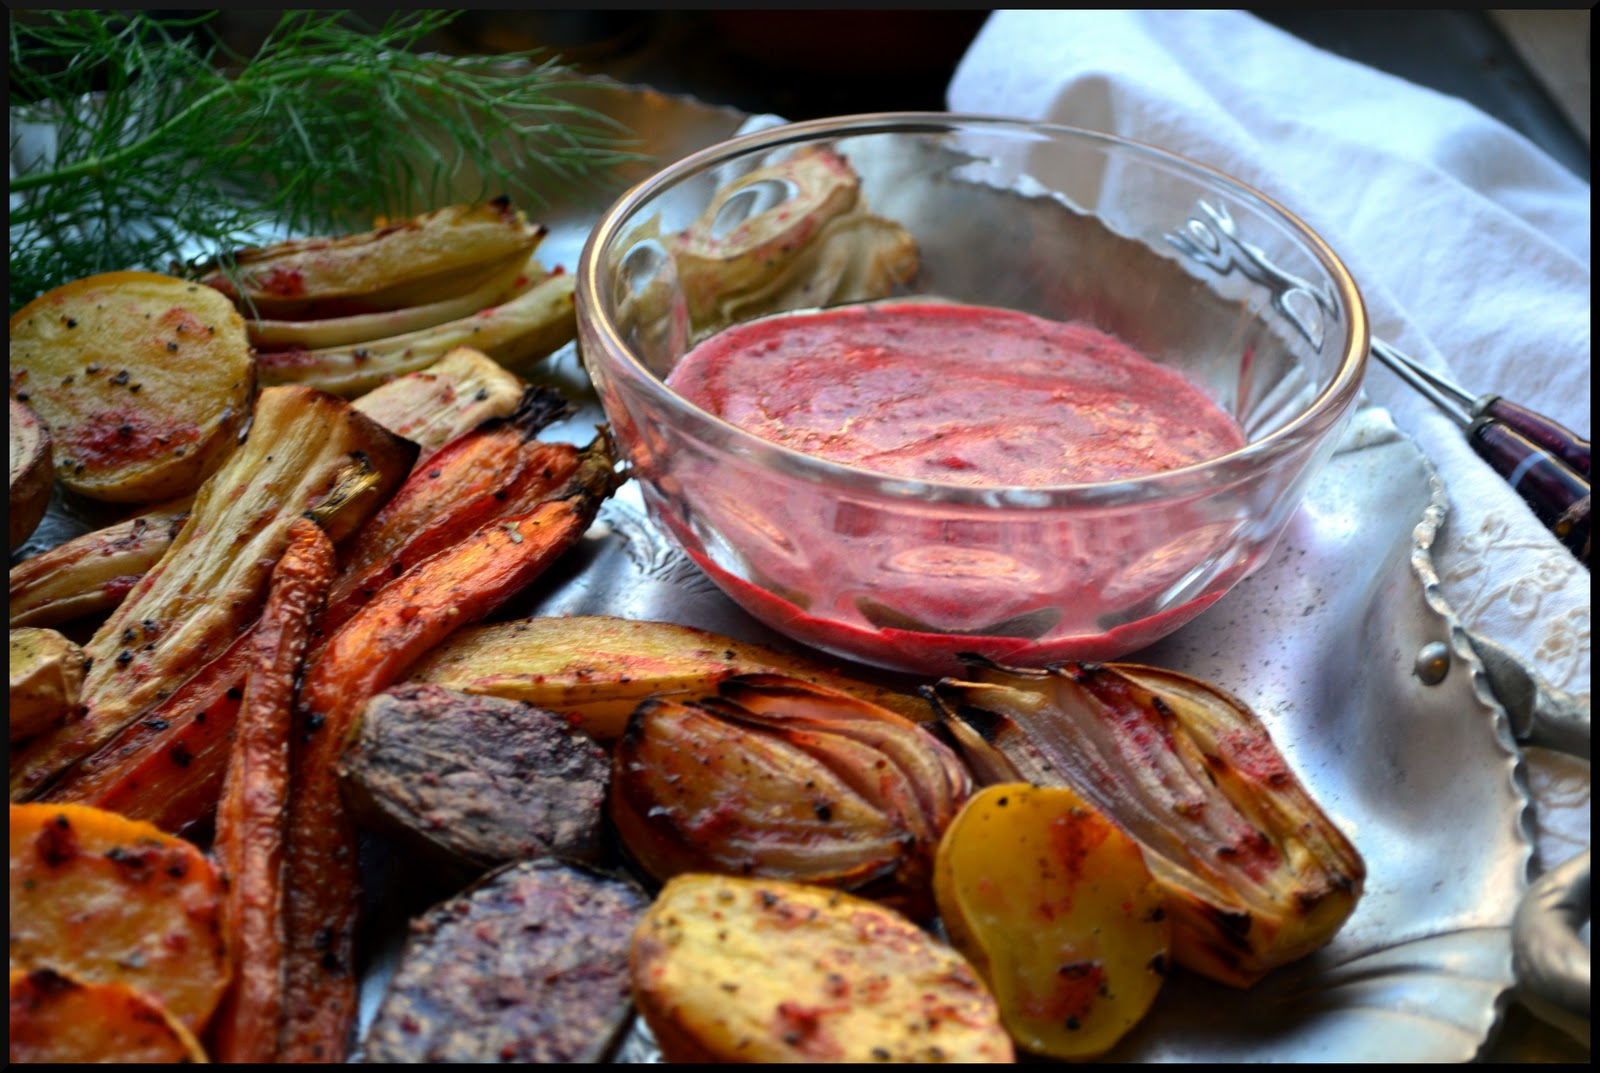 ... on the side? Roasted Root Vegetables with Red Current and Herb Dip